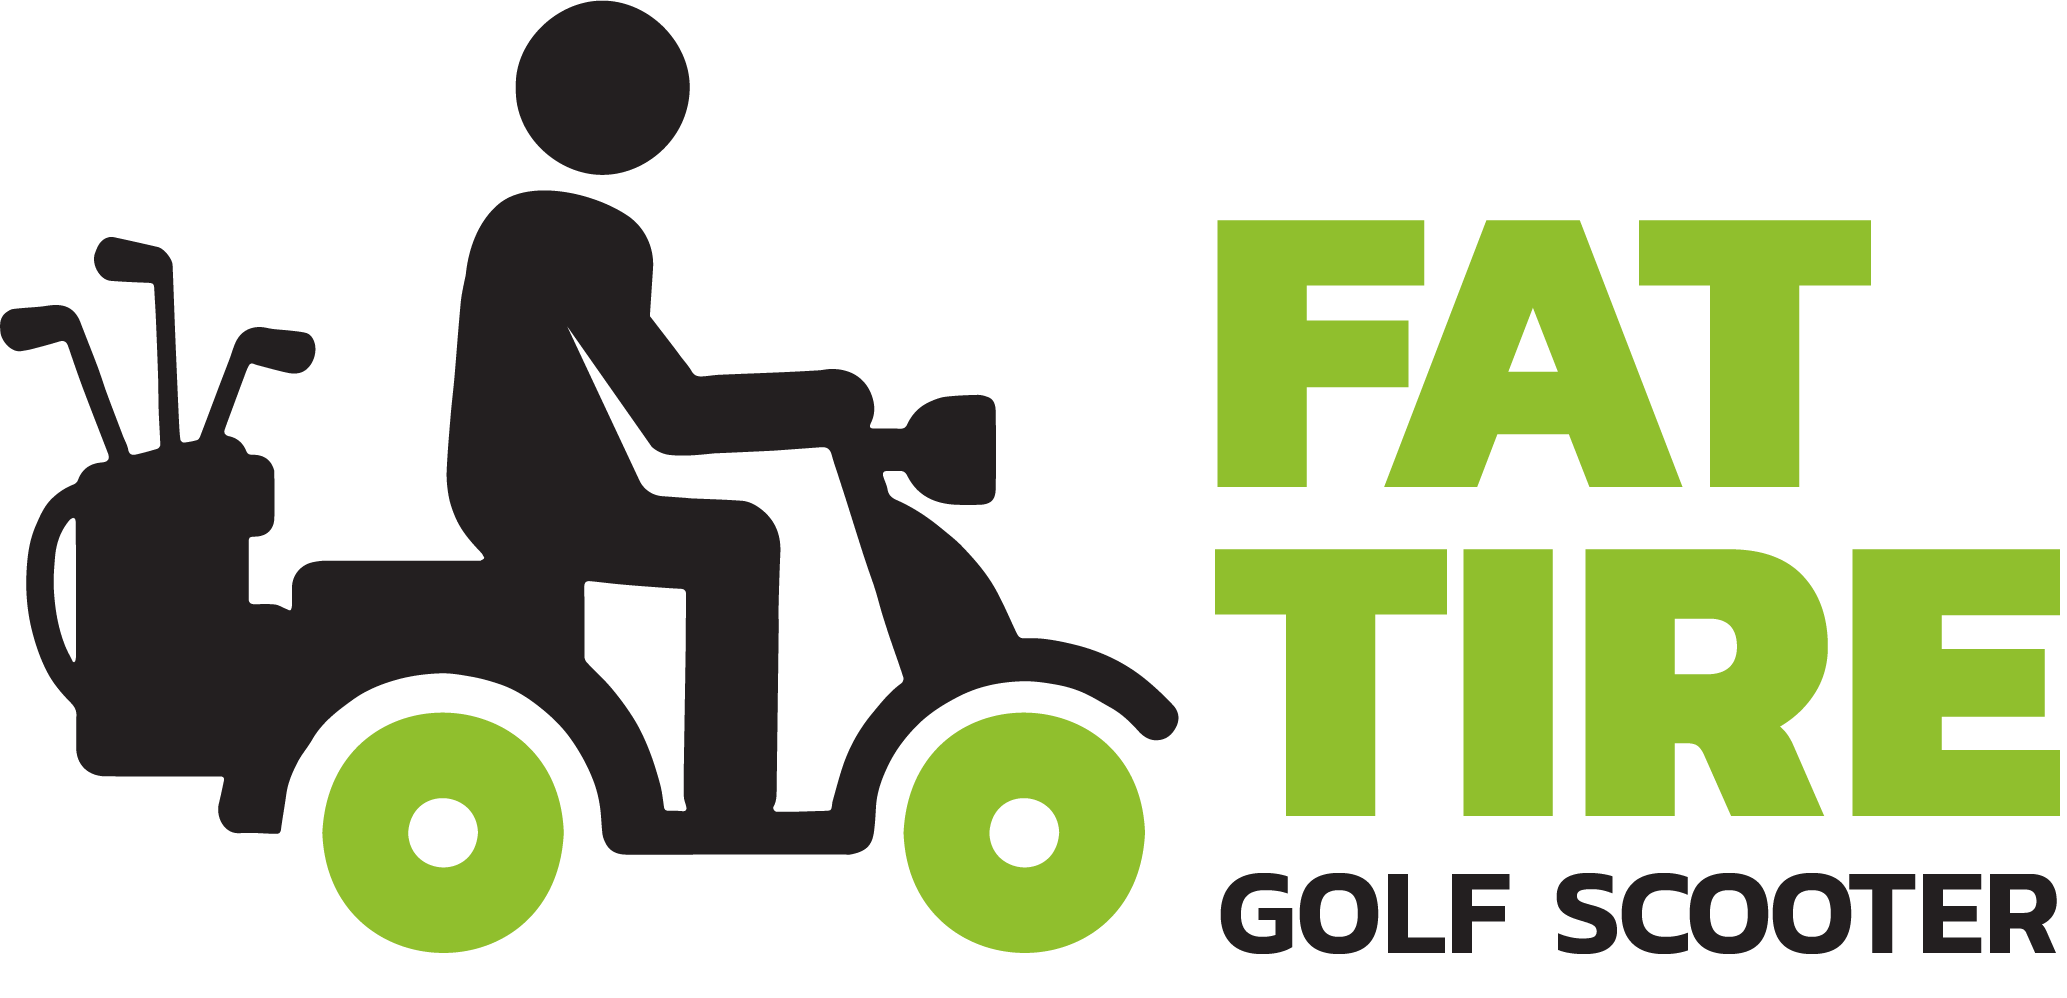 fat-tire-golf-scooter-logo (1)